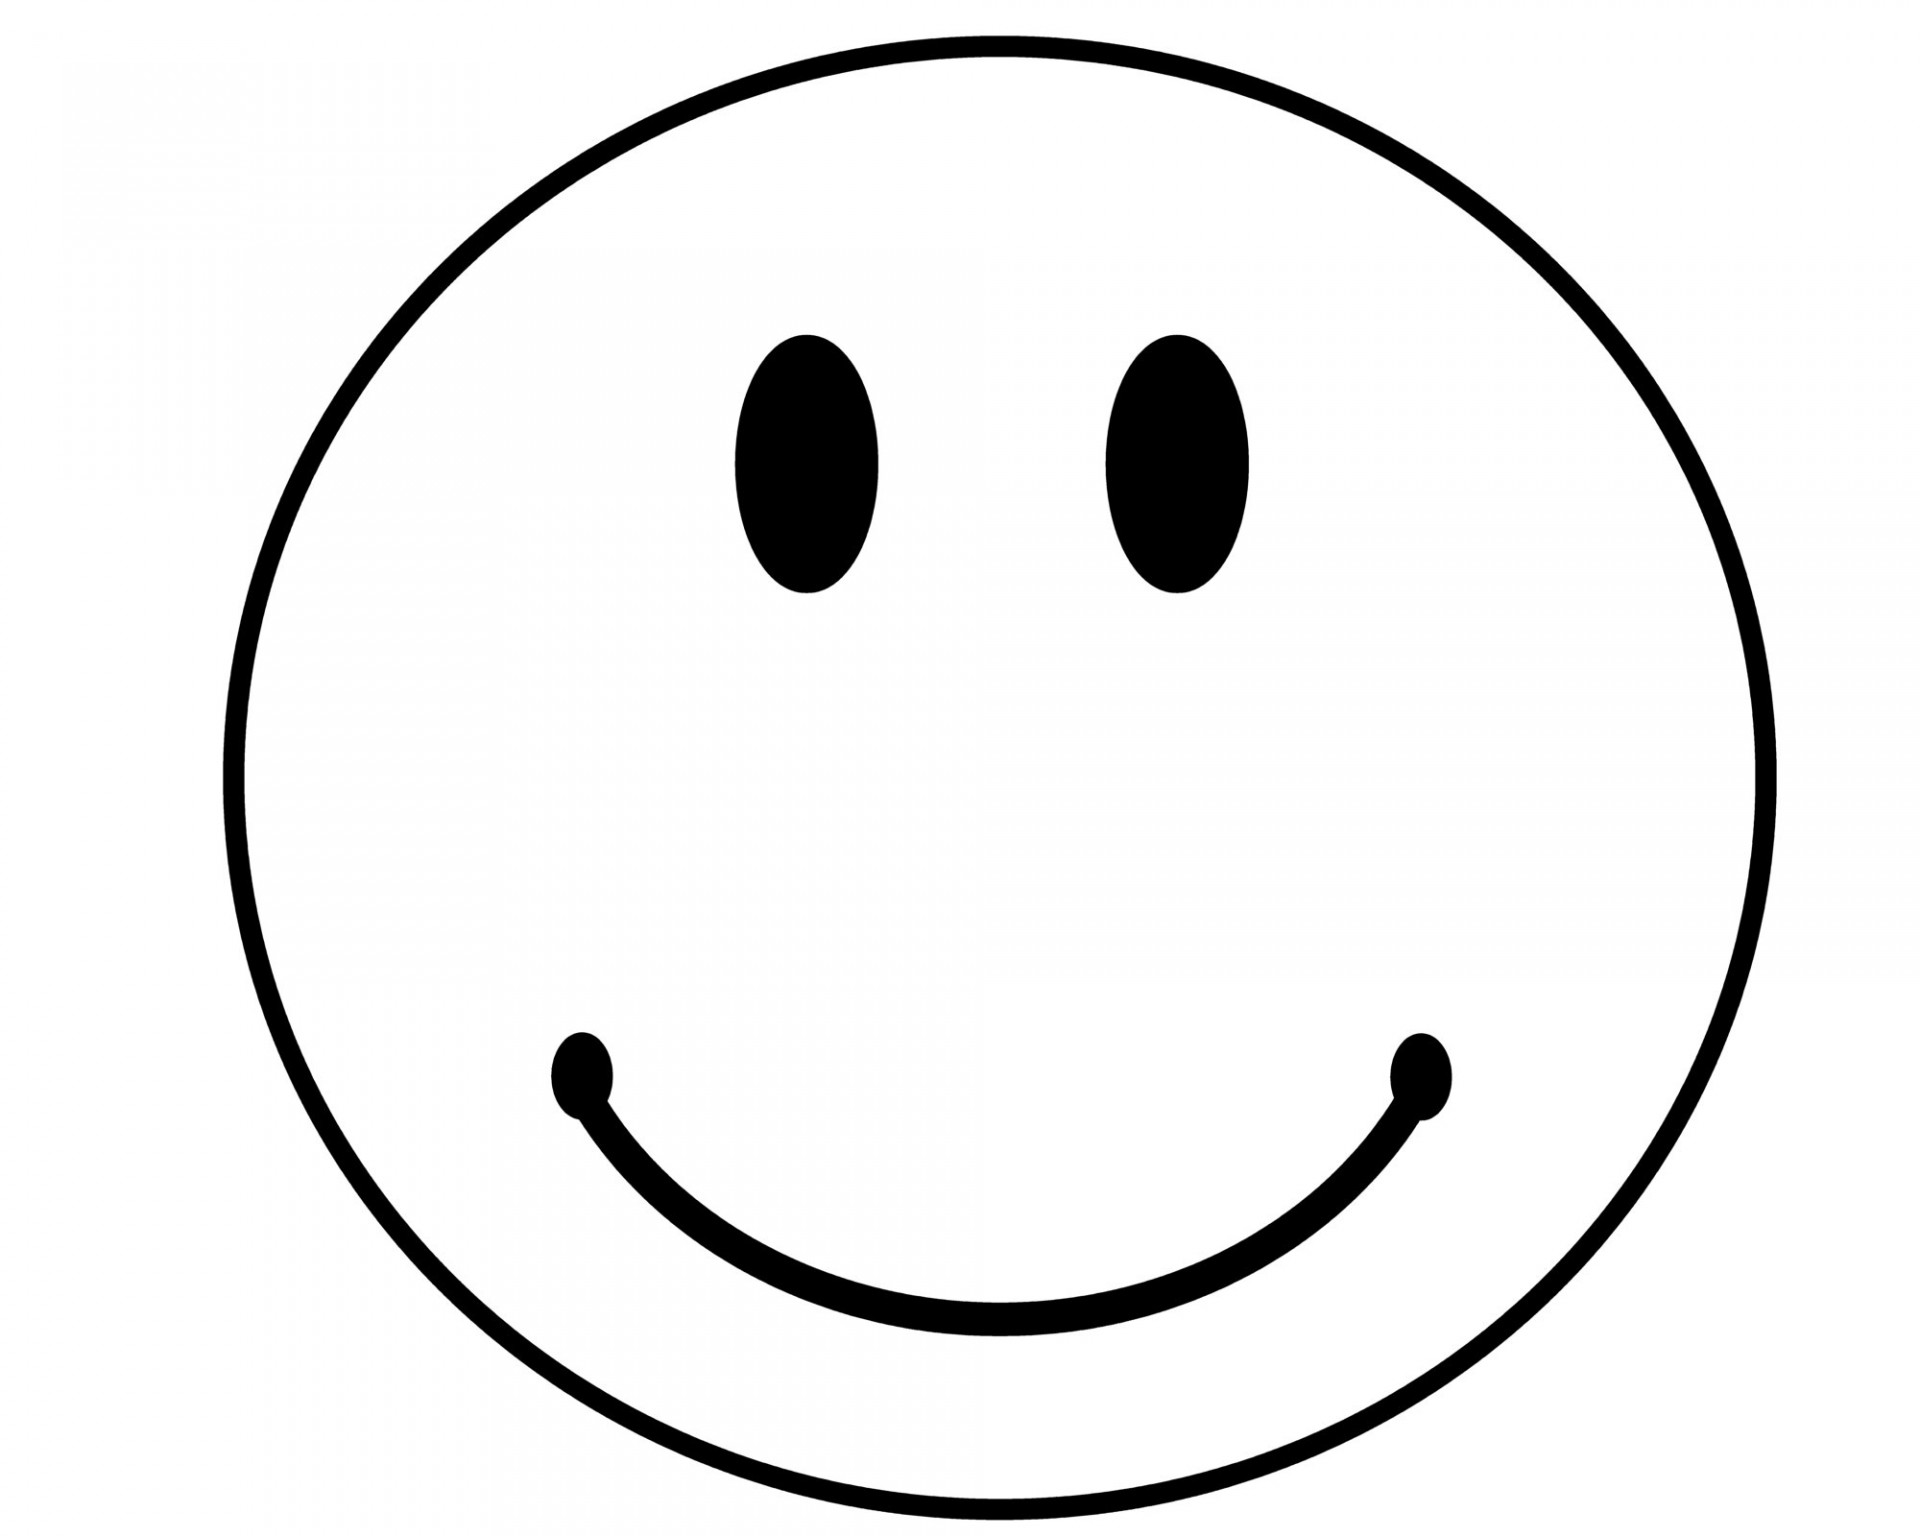 1920x1536 Clip Art Smiley Face Free Stock Photo